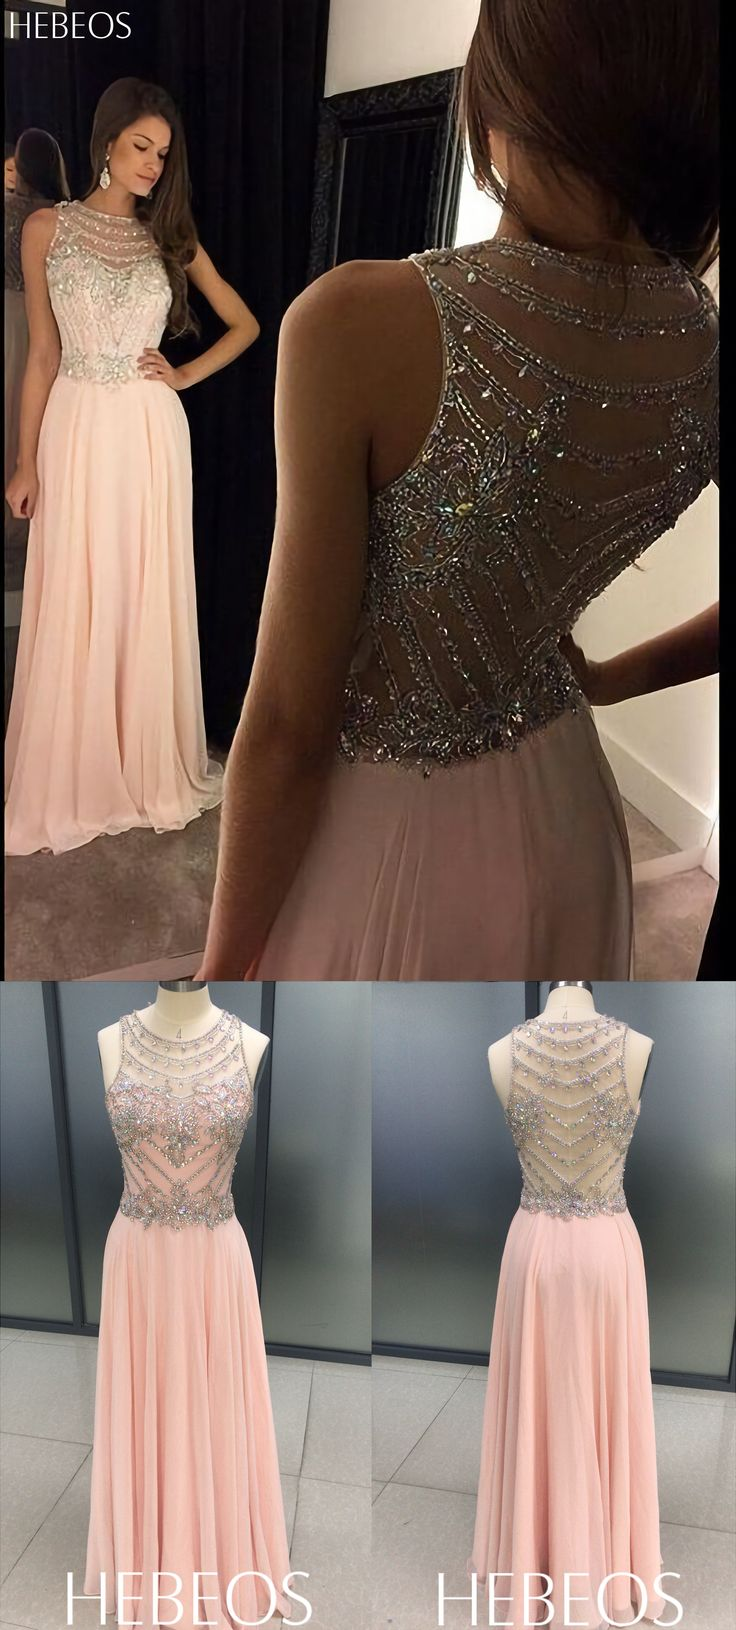 HEBEOS A-Line Scoop Chiffon Pink Long 2018 Prom Dresses